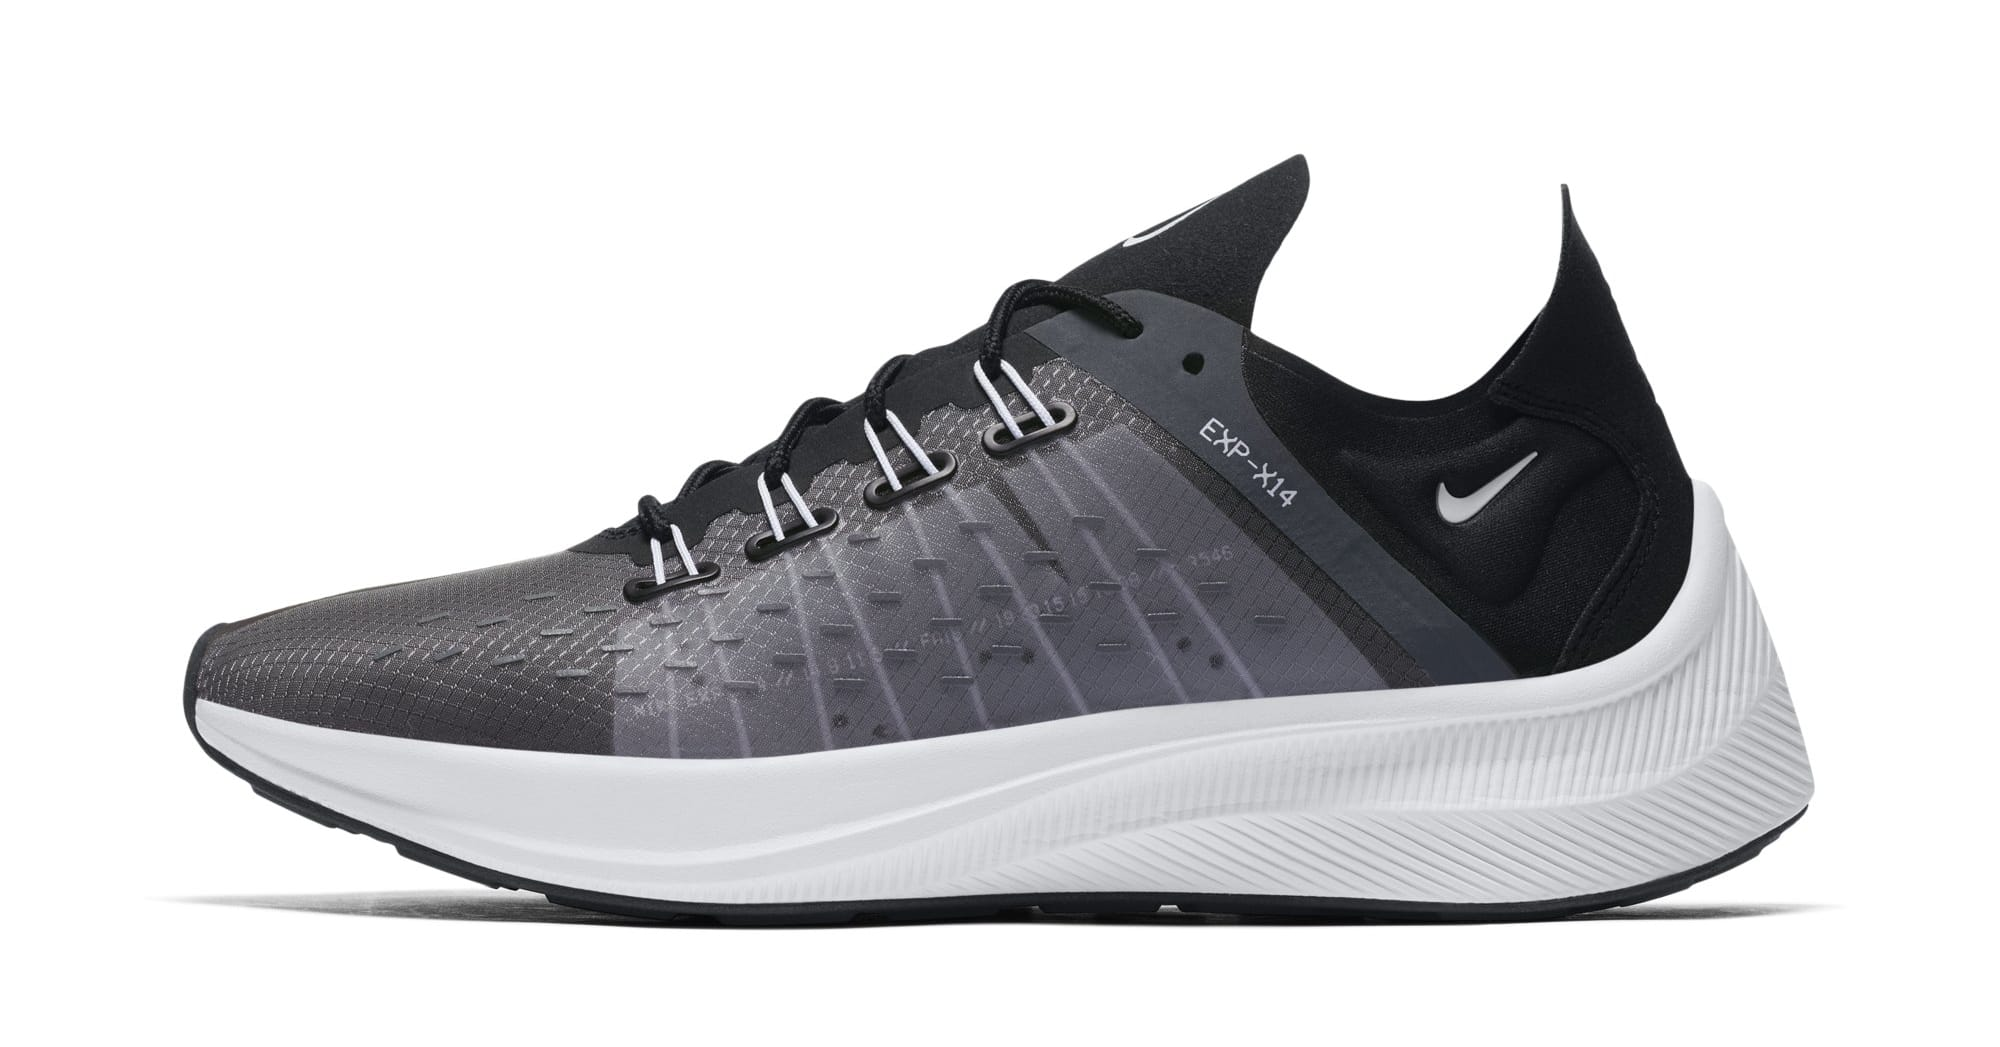 Nike WMNS EXP-X14 'Black/White/Wolf Grey' AO3170-001 (Lateral)